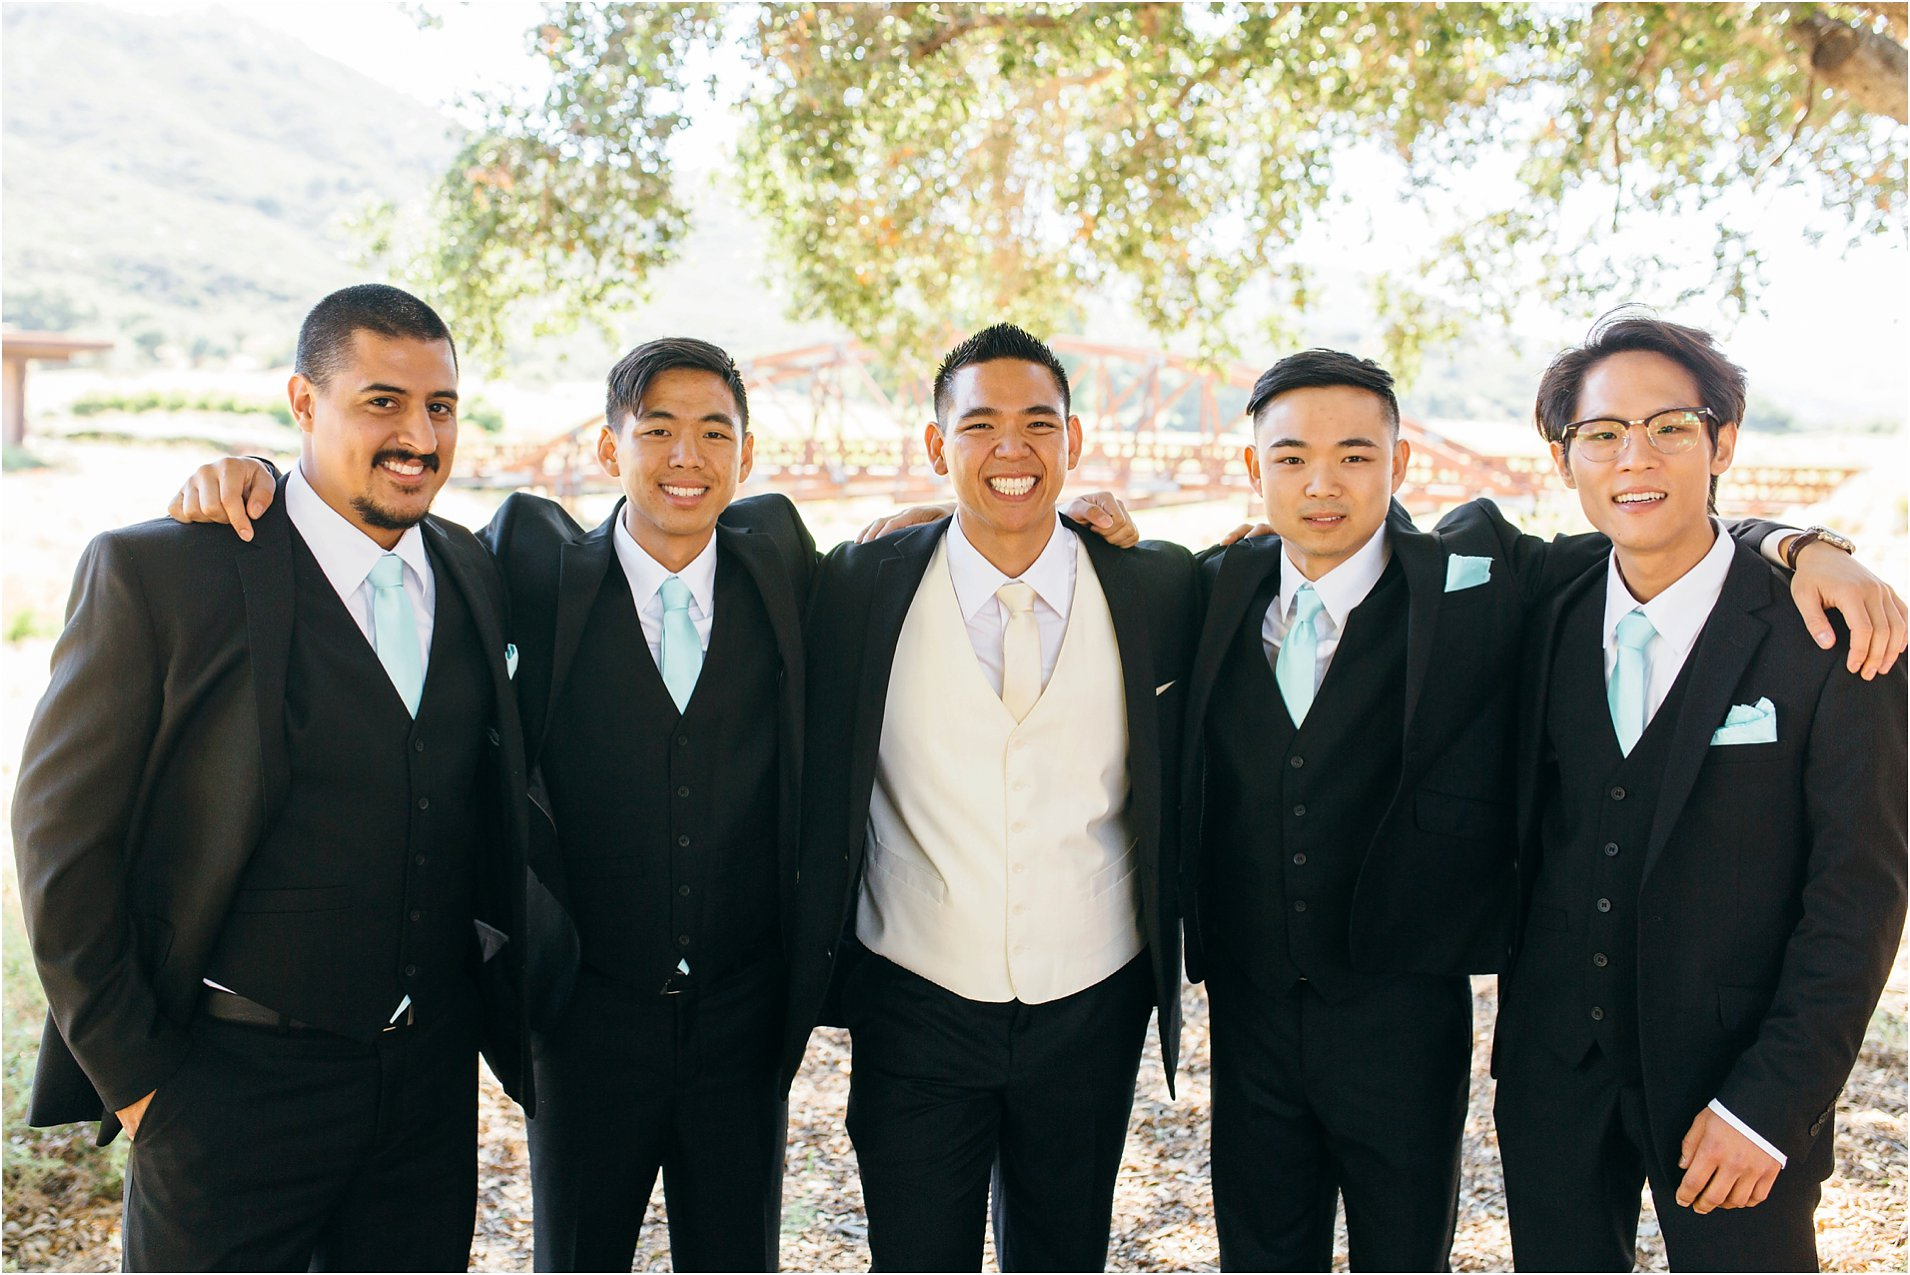 groom and groomsmen photos in southern california